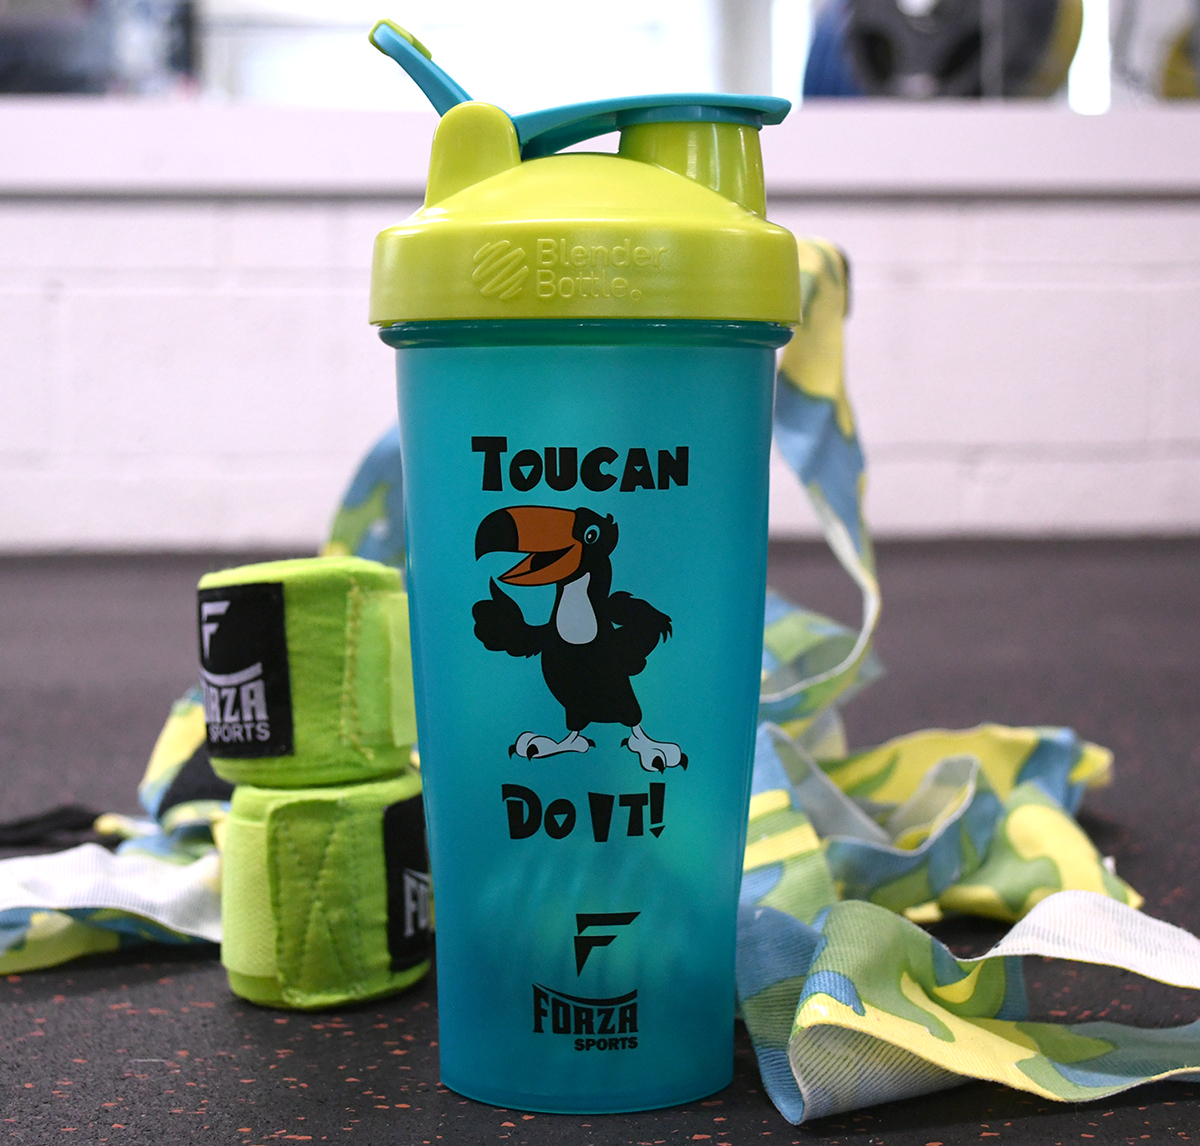 Blender-Bottle-x-Forza-Sports-Classic-28-oz-Shaker-Mixer-Cup-with-Loop-Top thumbnail 49